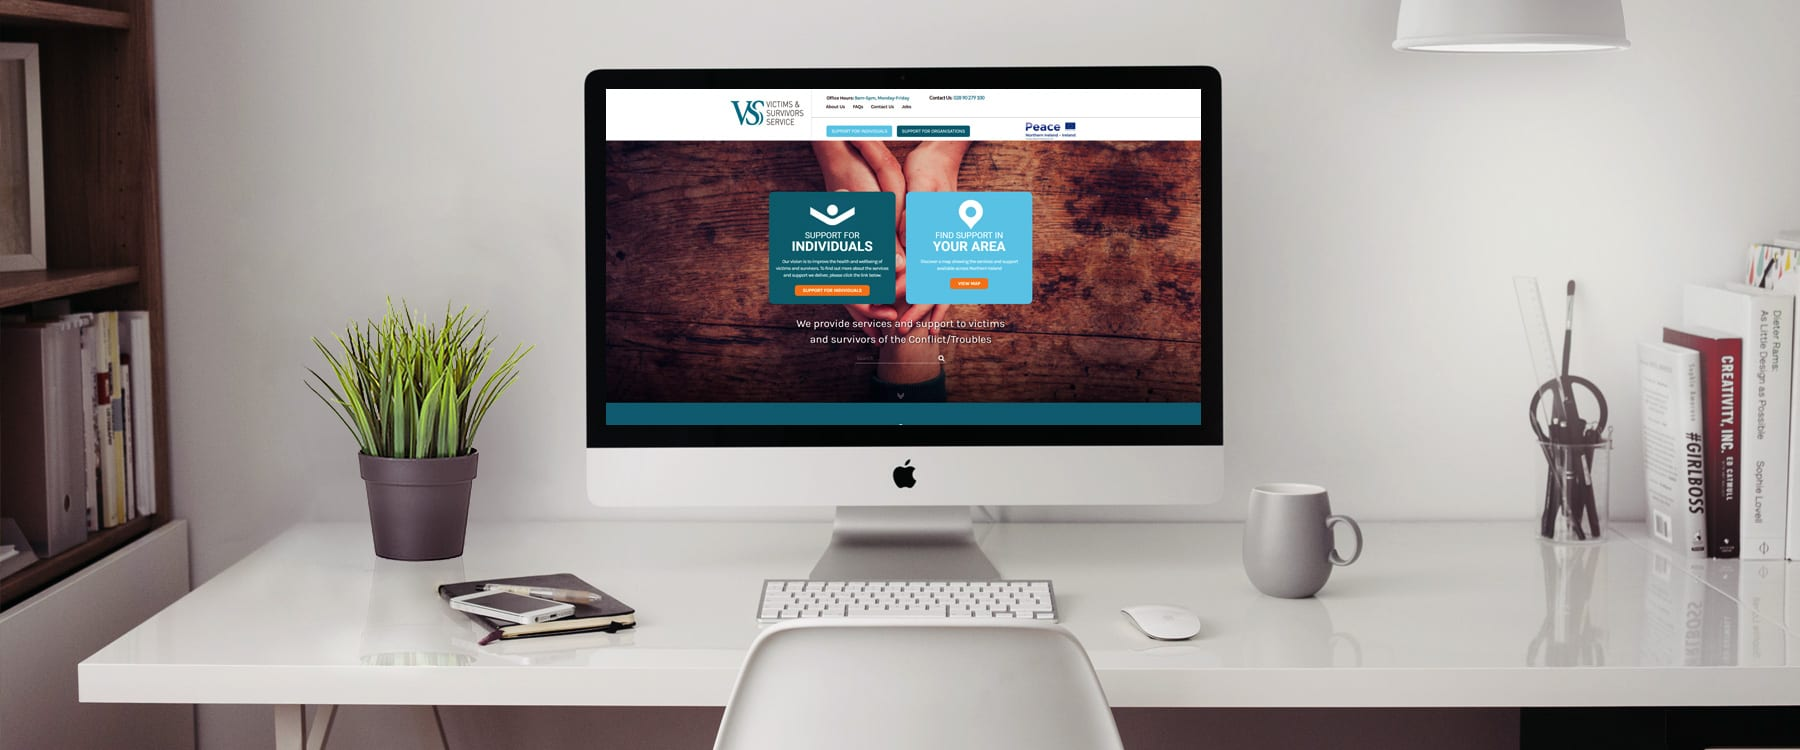 Belfast Charity Victim Support Services Launch New Website Image